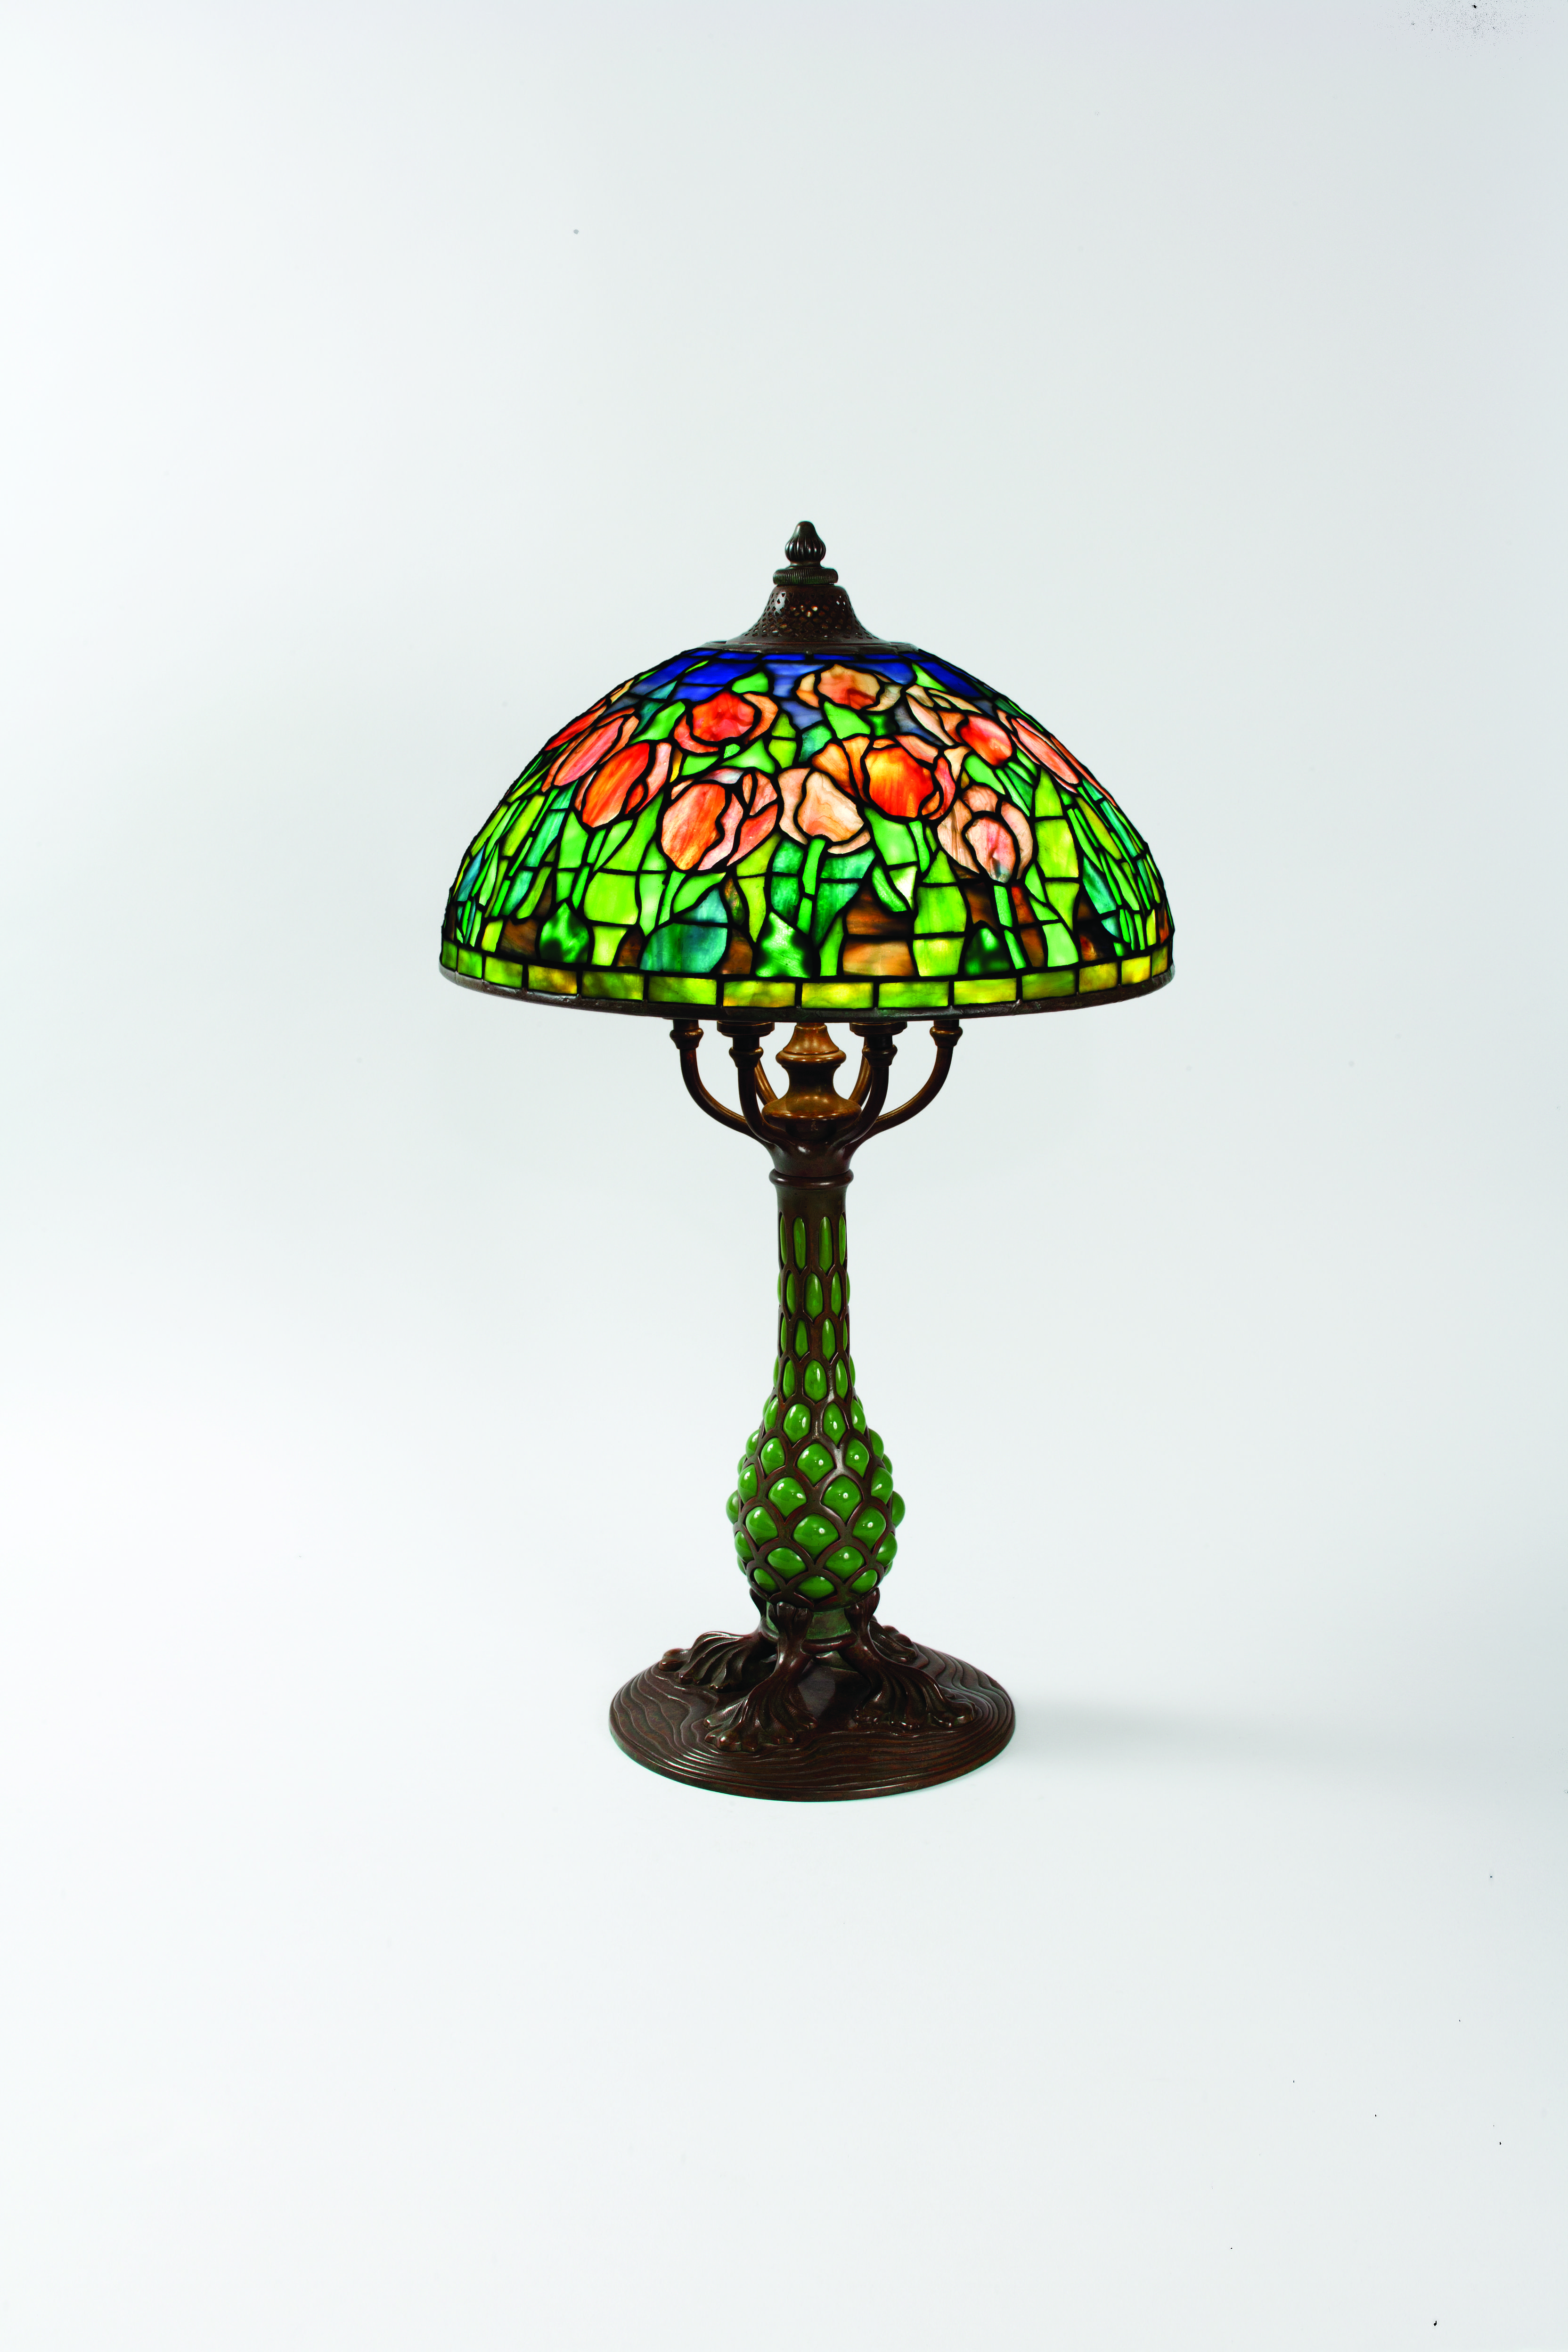 Tiffany Studios Tulip Table Lamp With Pink And Red Flowers On A Blue Green Ground Accented By Two Bands Of Gl At The Top